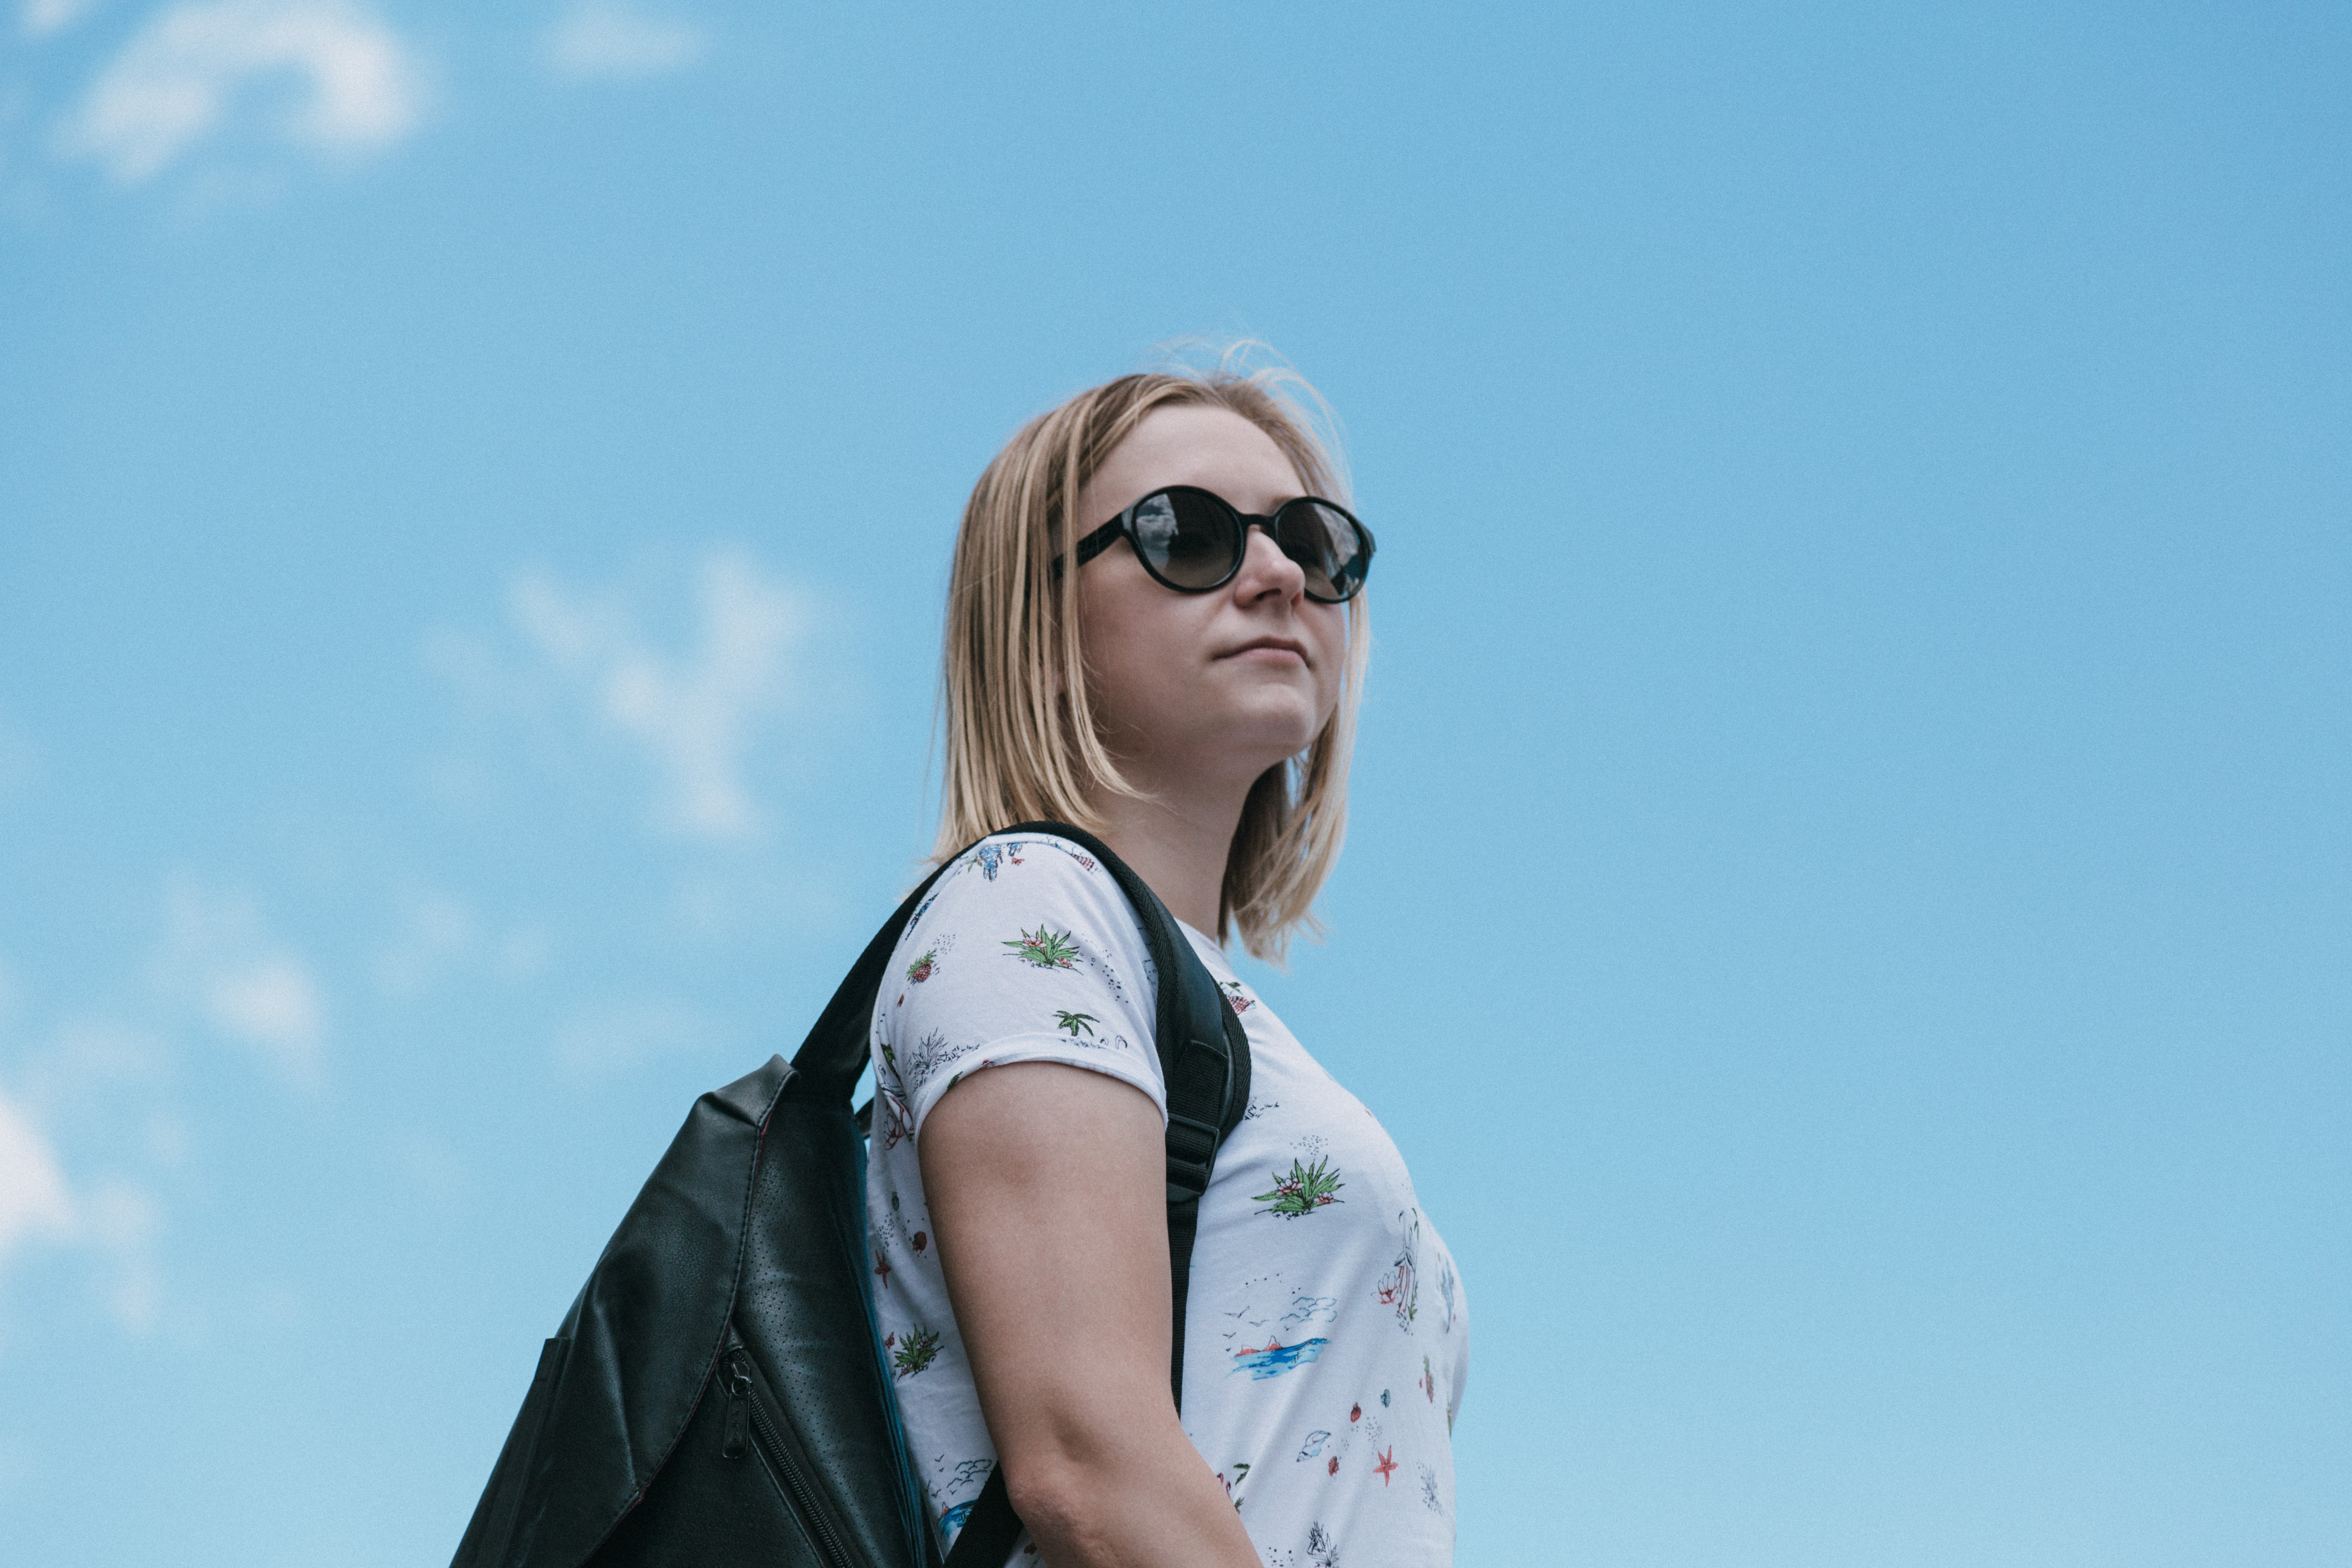 Student wearing a backpack and sunglasses against a blue sky